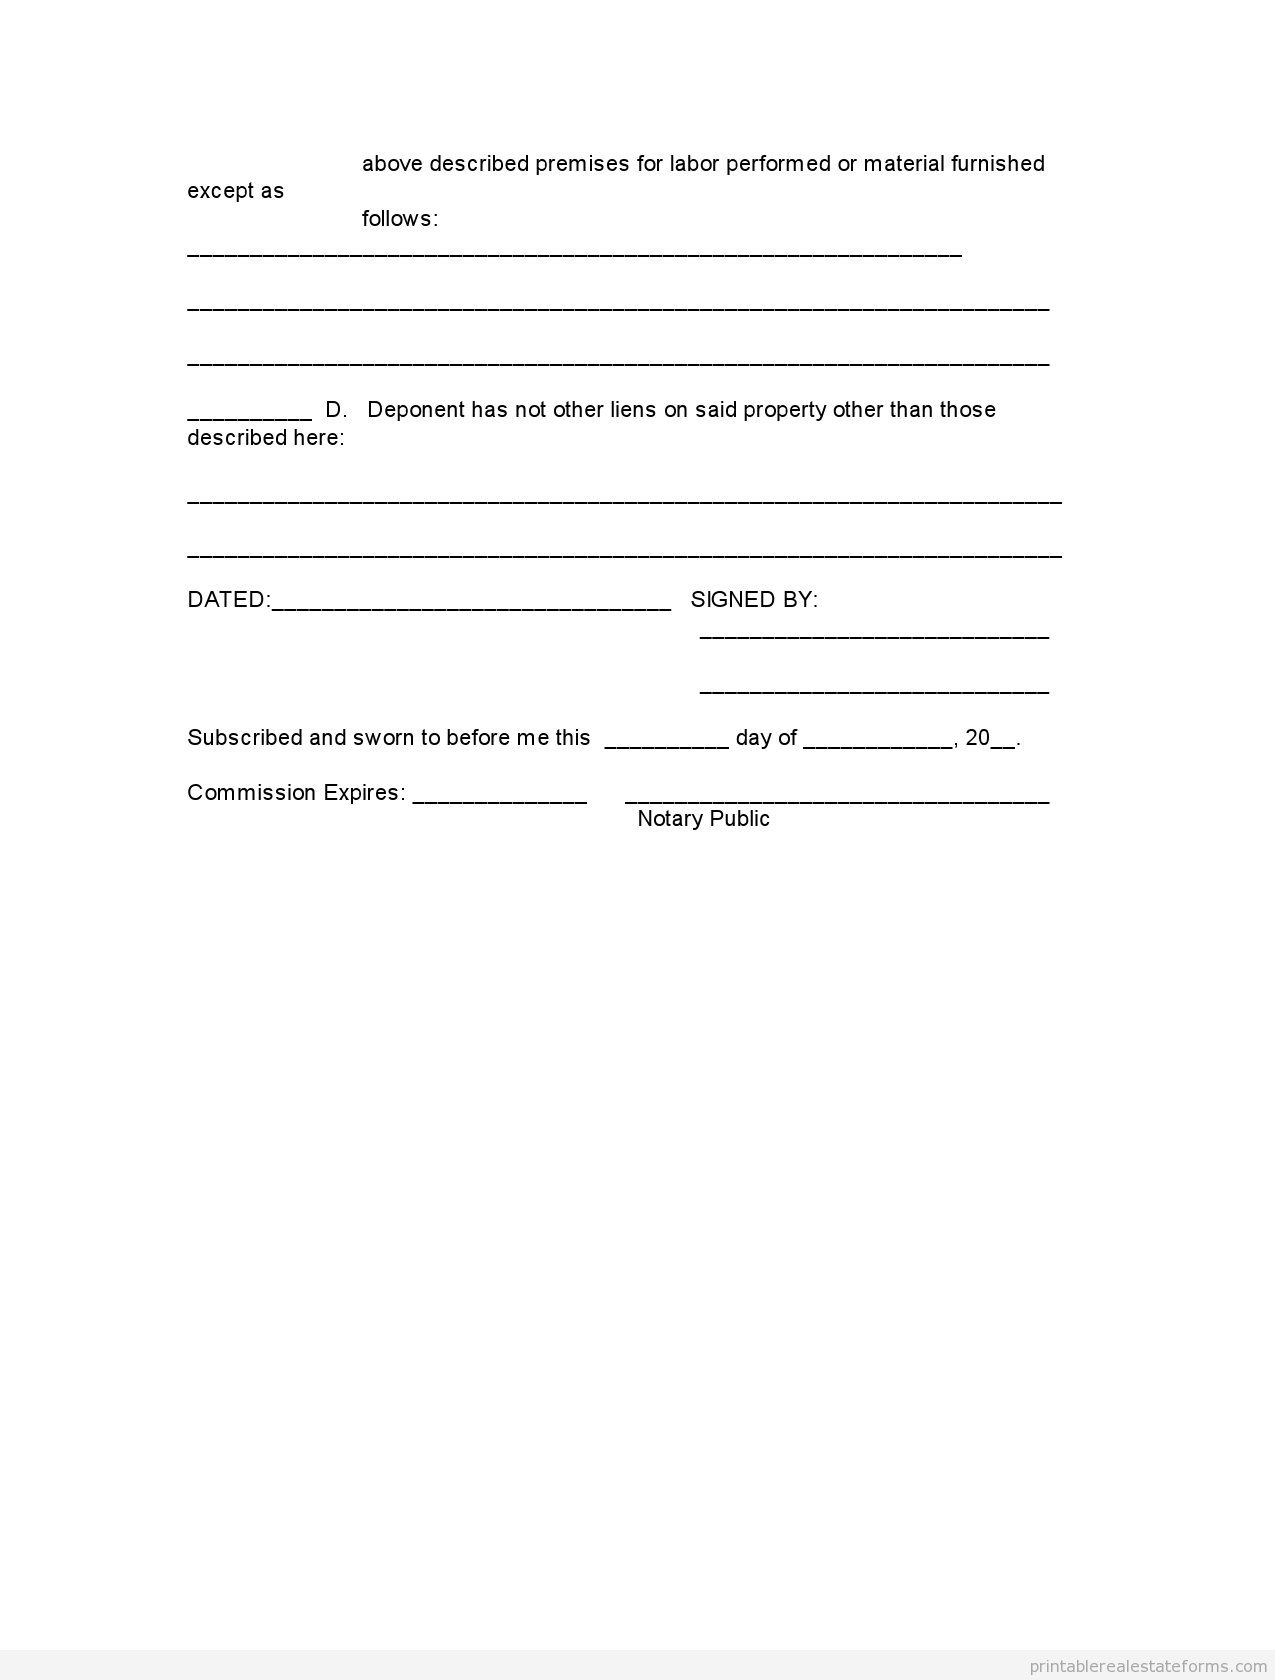 Printable affidavit of ownership 2 template 2015 – Printable Affidavit Form